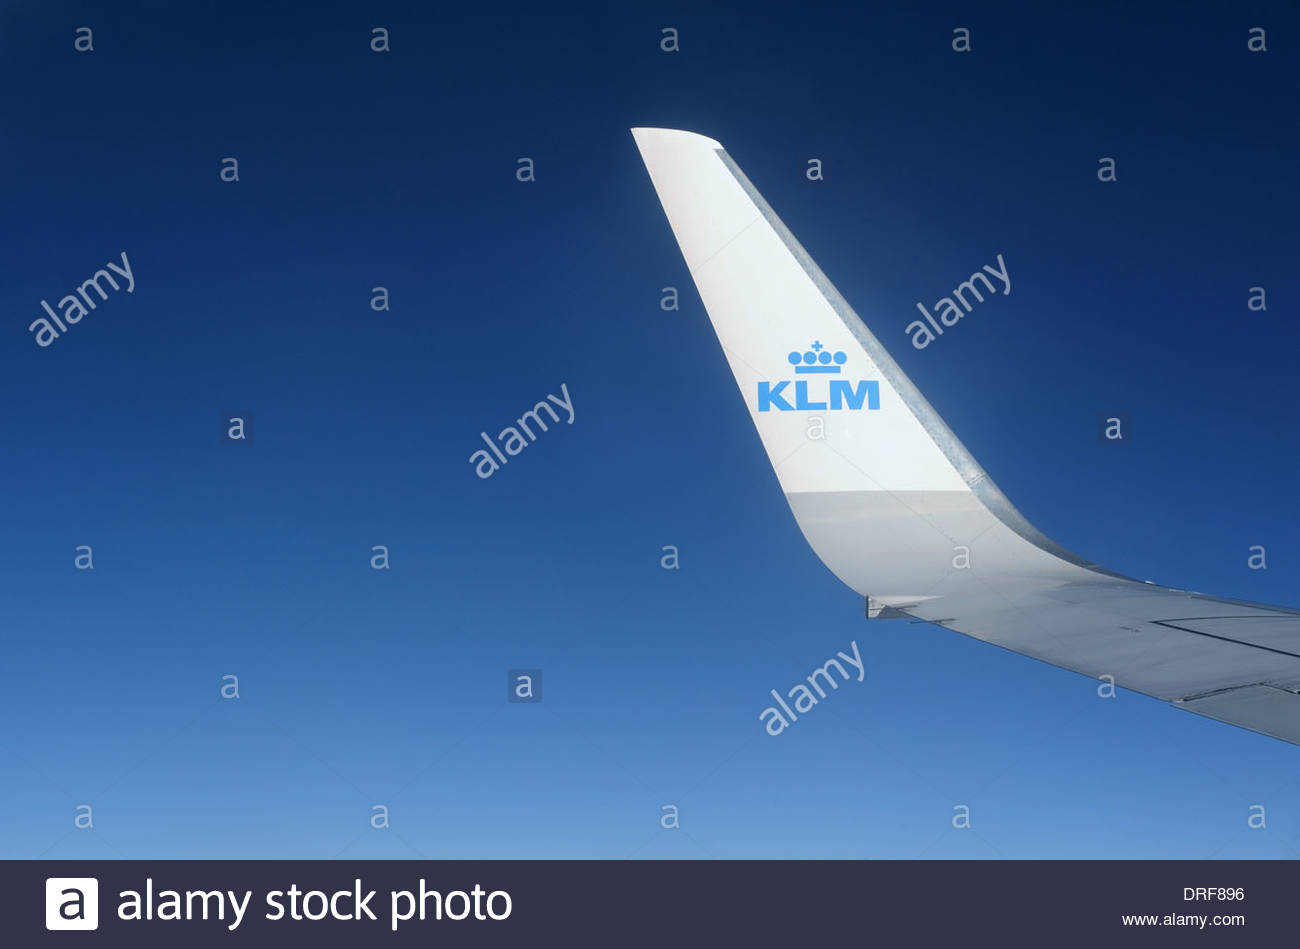 KLM Boeing 737 winglet with KLM logo. - Stock Image